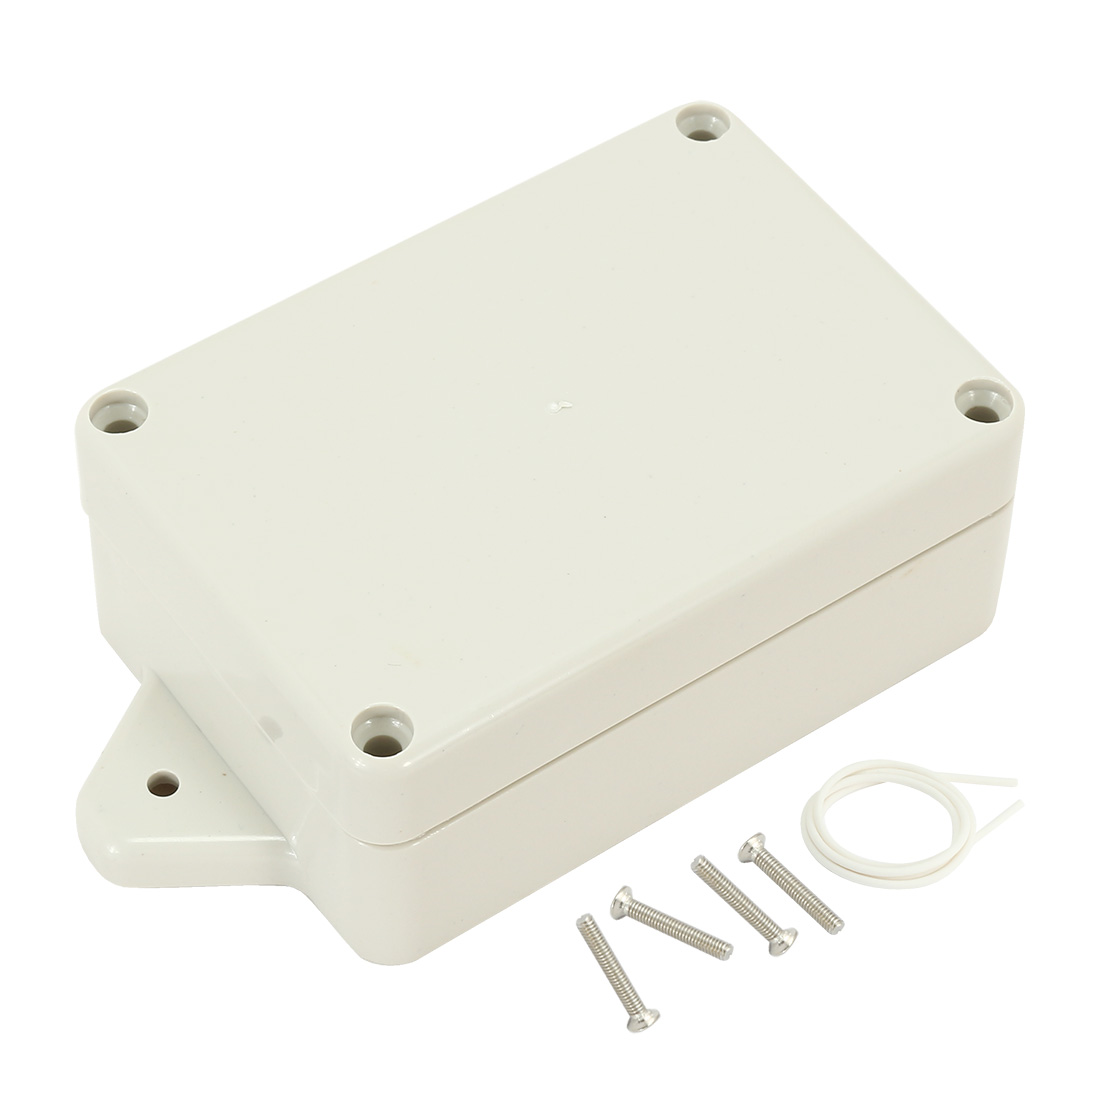 "3.27""x2.28""x1.3""(83mmx58mmx33mm) ABS Junction Box Universal Electric Project Enclosure w Fixed Ear"